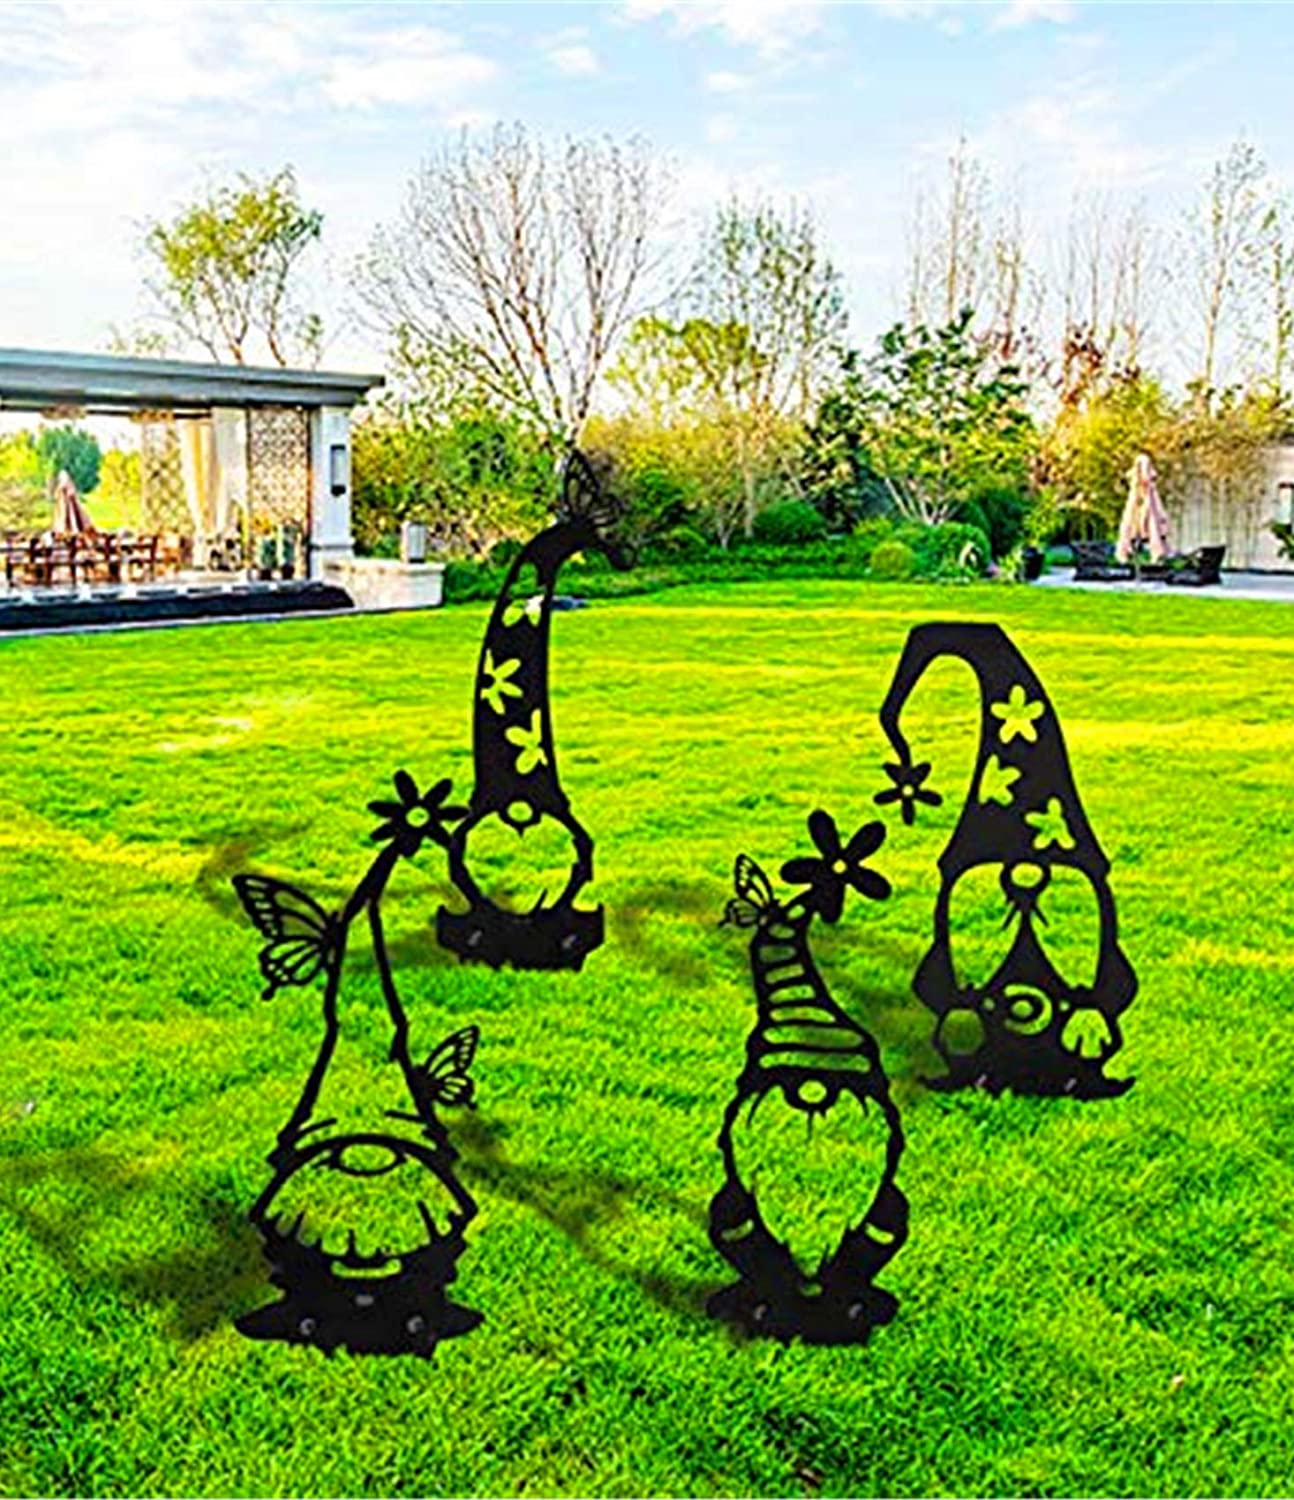 4PCS Easter Acrylic Branch Gnomes Decoration, Easter Decor, Cute Hollowed Out Garden Gnomes Silhouette Art Dwarf Decor Branch Ornaments for Home Garden Yard Patio Outdoor Decoration